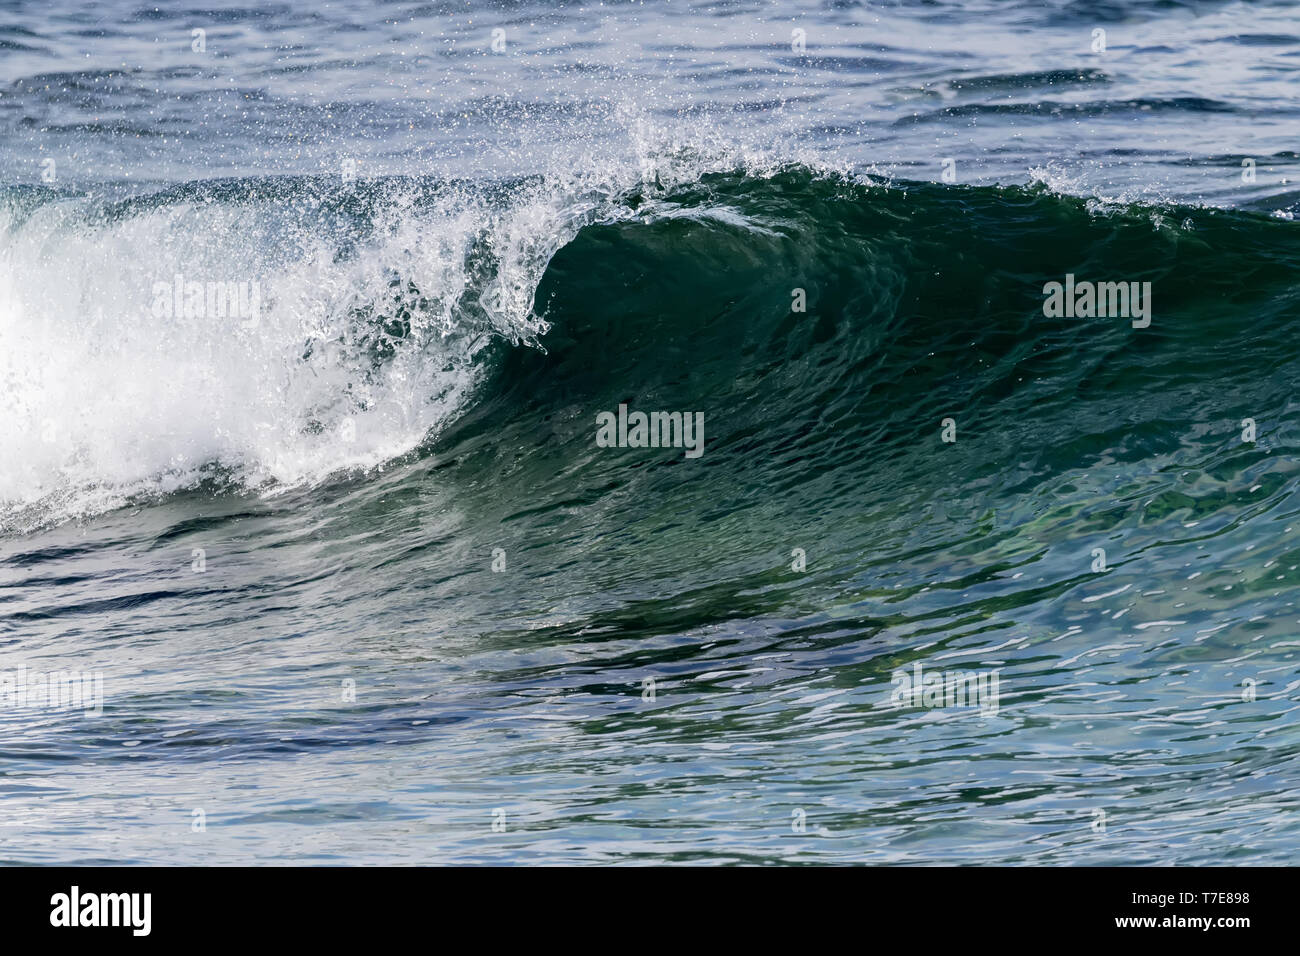 """I've been hearing a lot about a """"blue wave"""" in the news lately, so it occurred to me that I should do my best to cover this tidal force with news phot - Stock Image"""